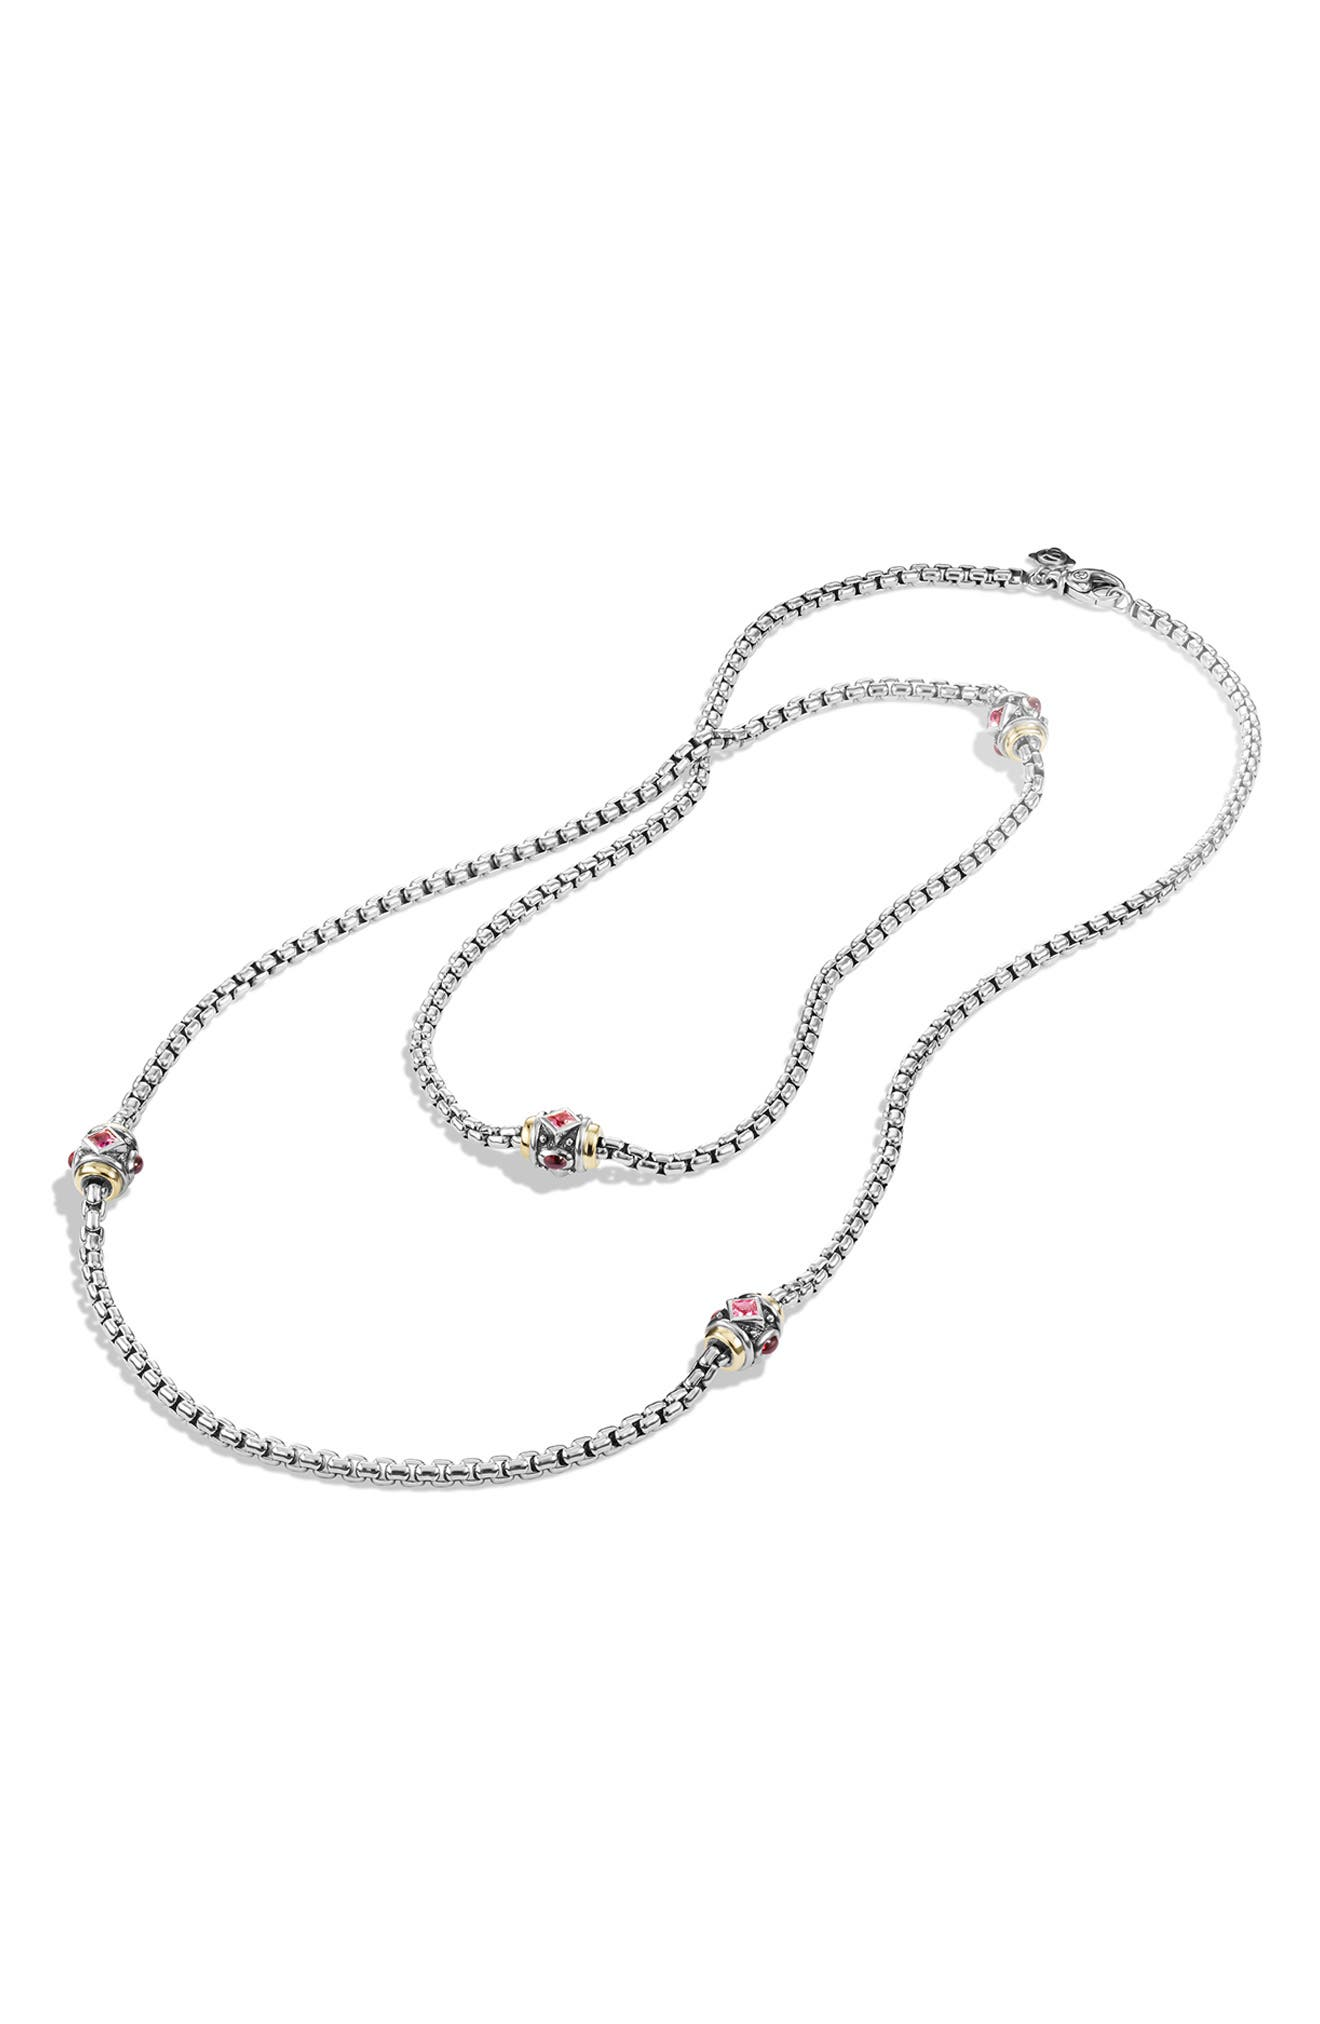 'Renaissance' Necklace with Semiprecious Stone and 18k Gold,                             Alternate thumbnail 4, color,                             650